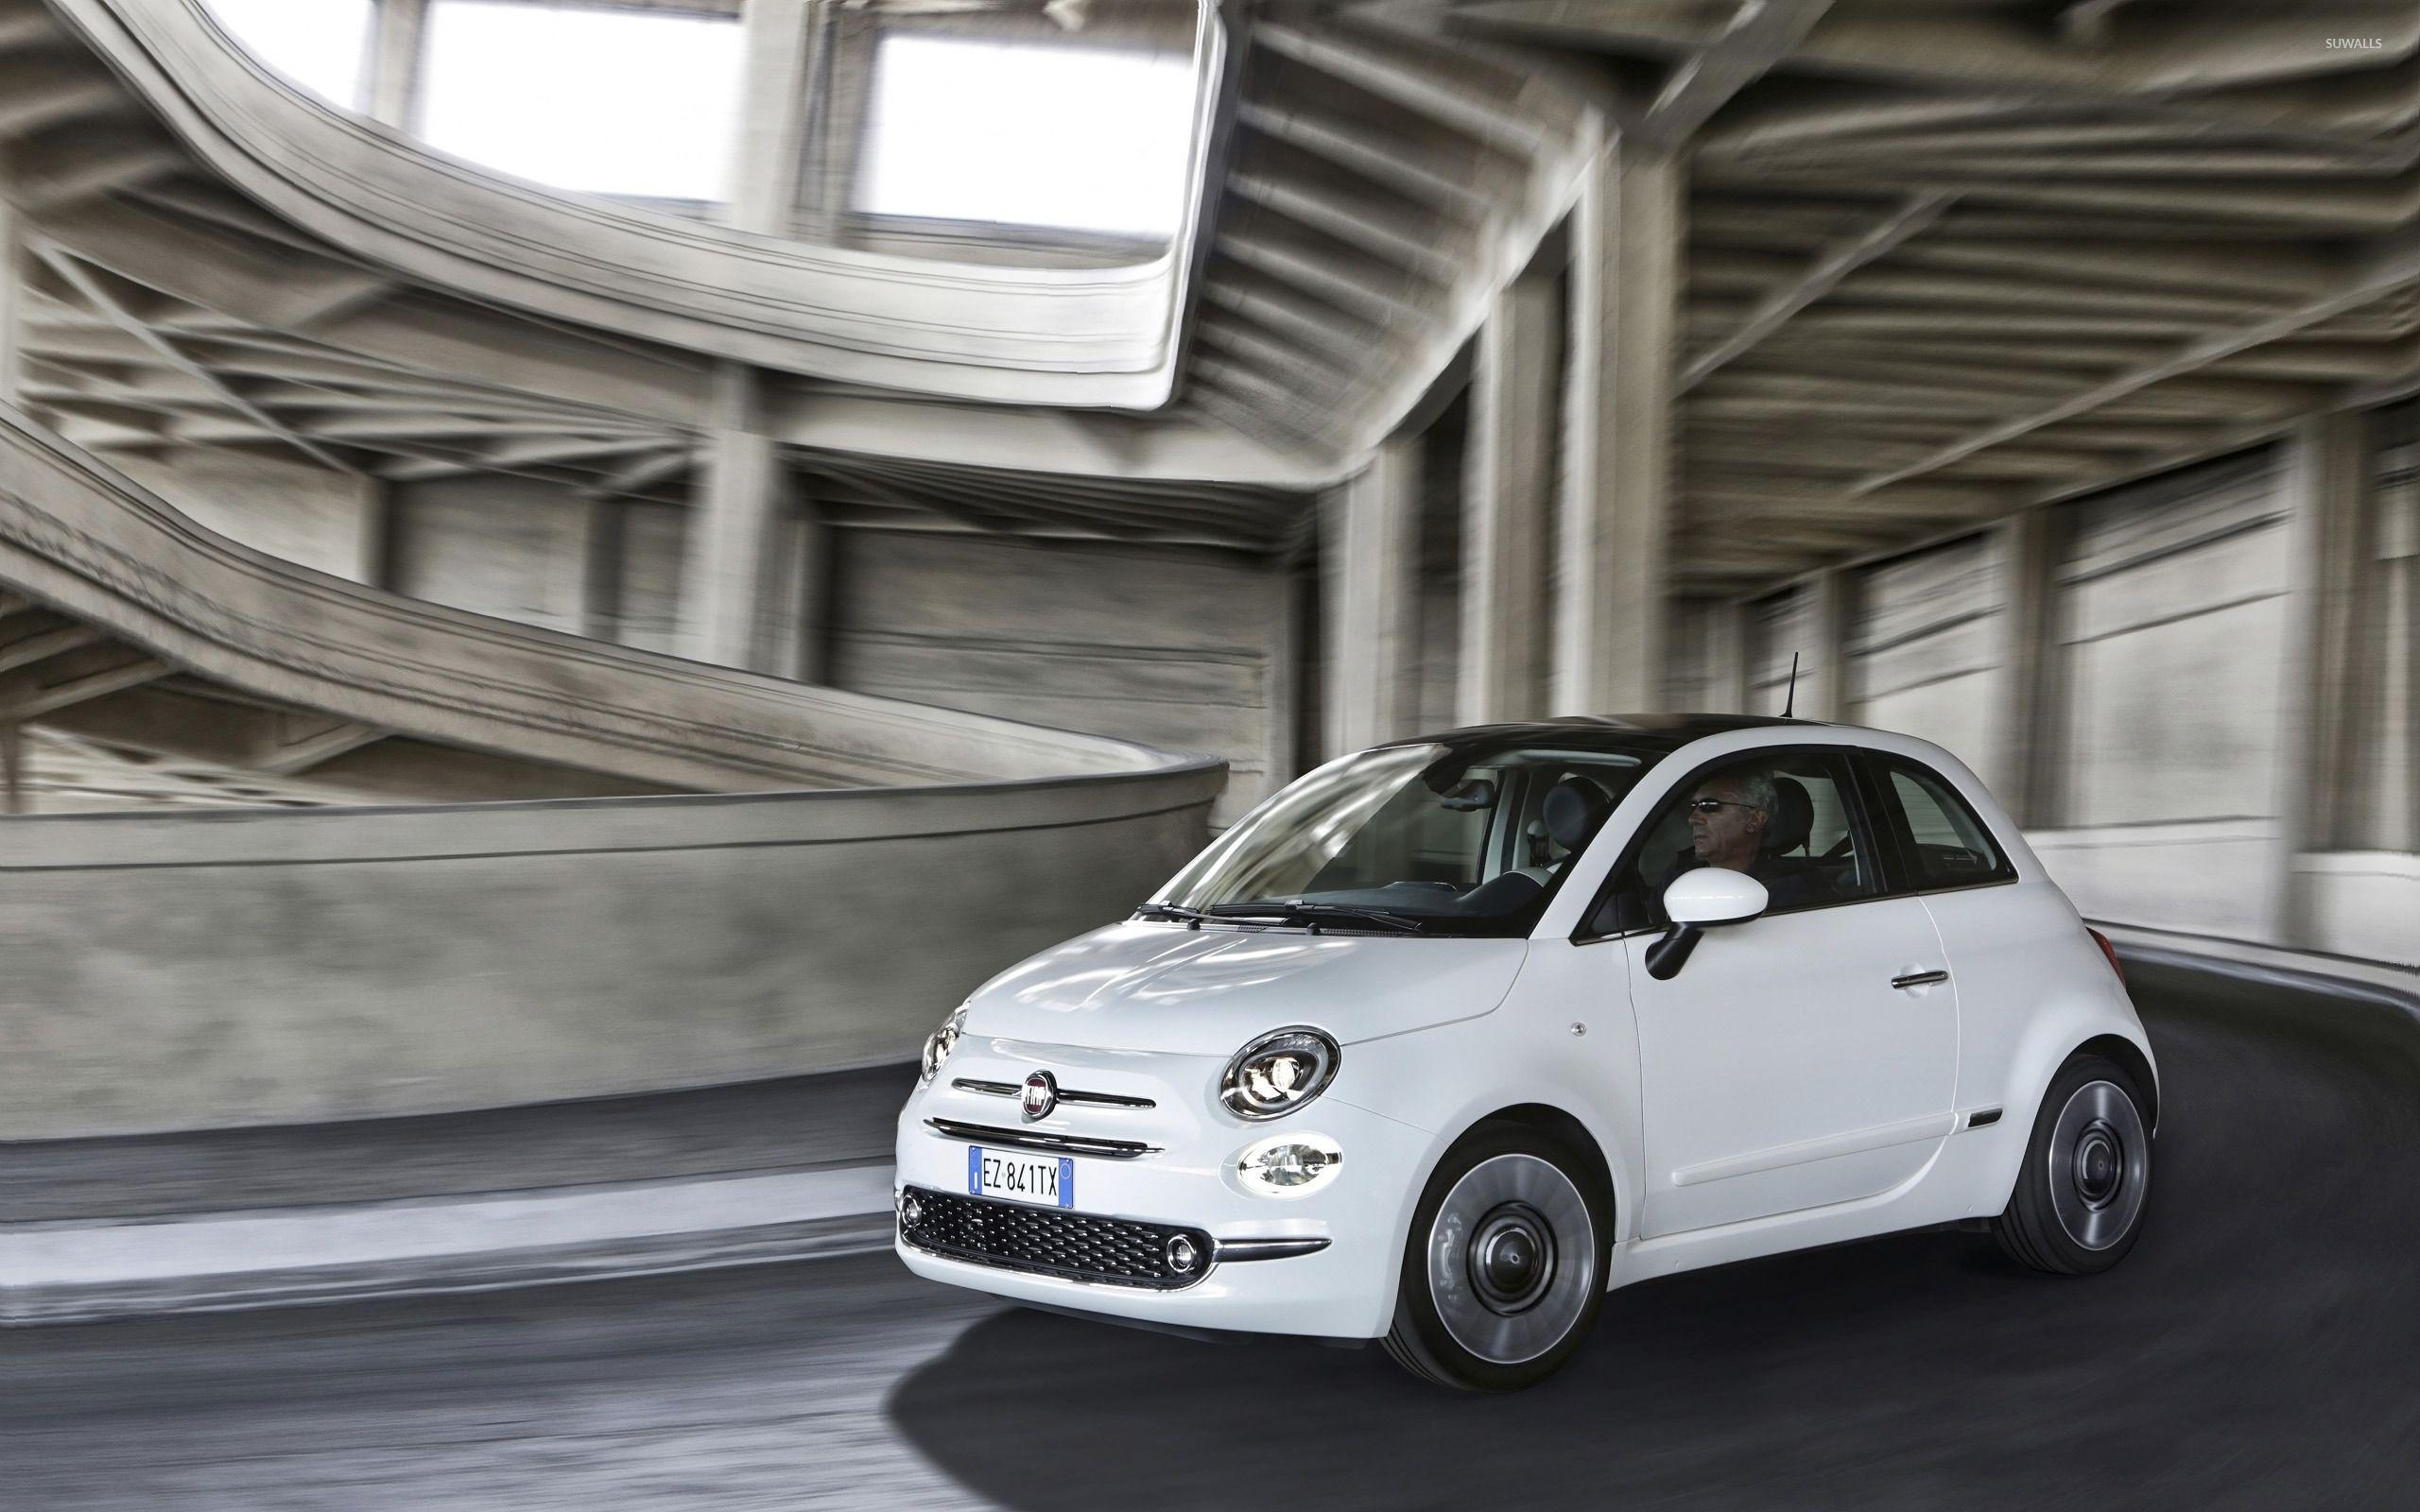 Fiat 500 Wallpapers 10 - 2560 X 1600 | stmed.net